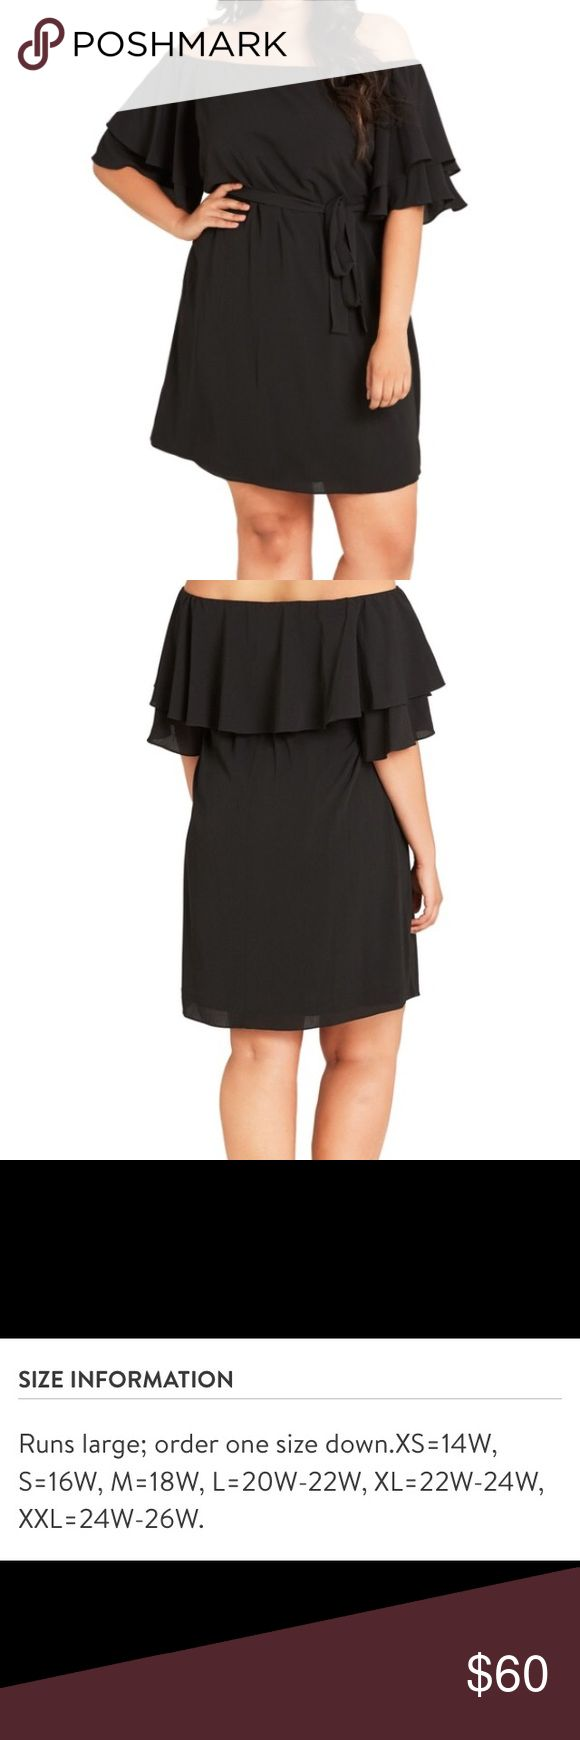 """City Chic Off The Shoulder Shift Dress A flirty shoulder-baring shift topped with a fluttery ruffle, 33"""" length, removable waist tie, 95% polyester, 5% elastane, machine wash, excellent condition, smoke free home, purchase from Nordstrom's, size:  xs 14w City Chic Dresses Strapless"""